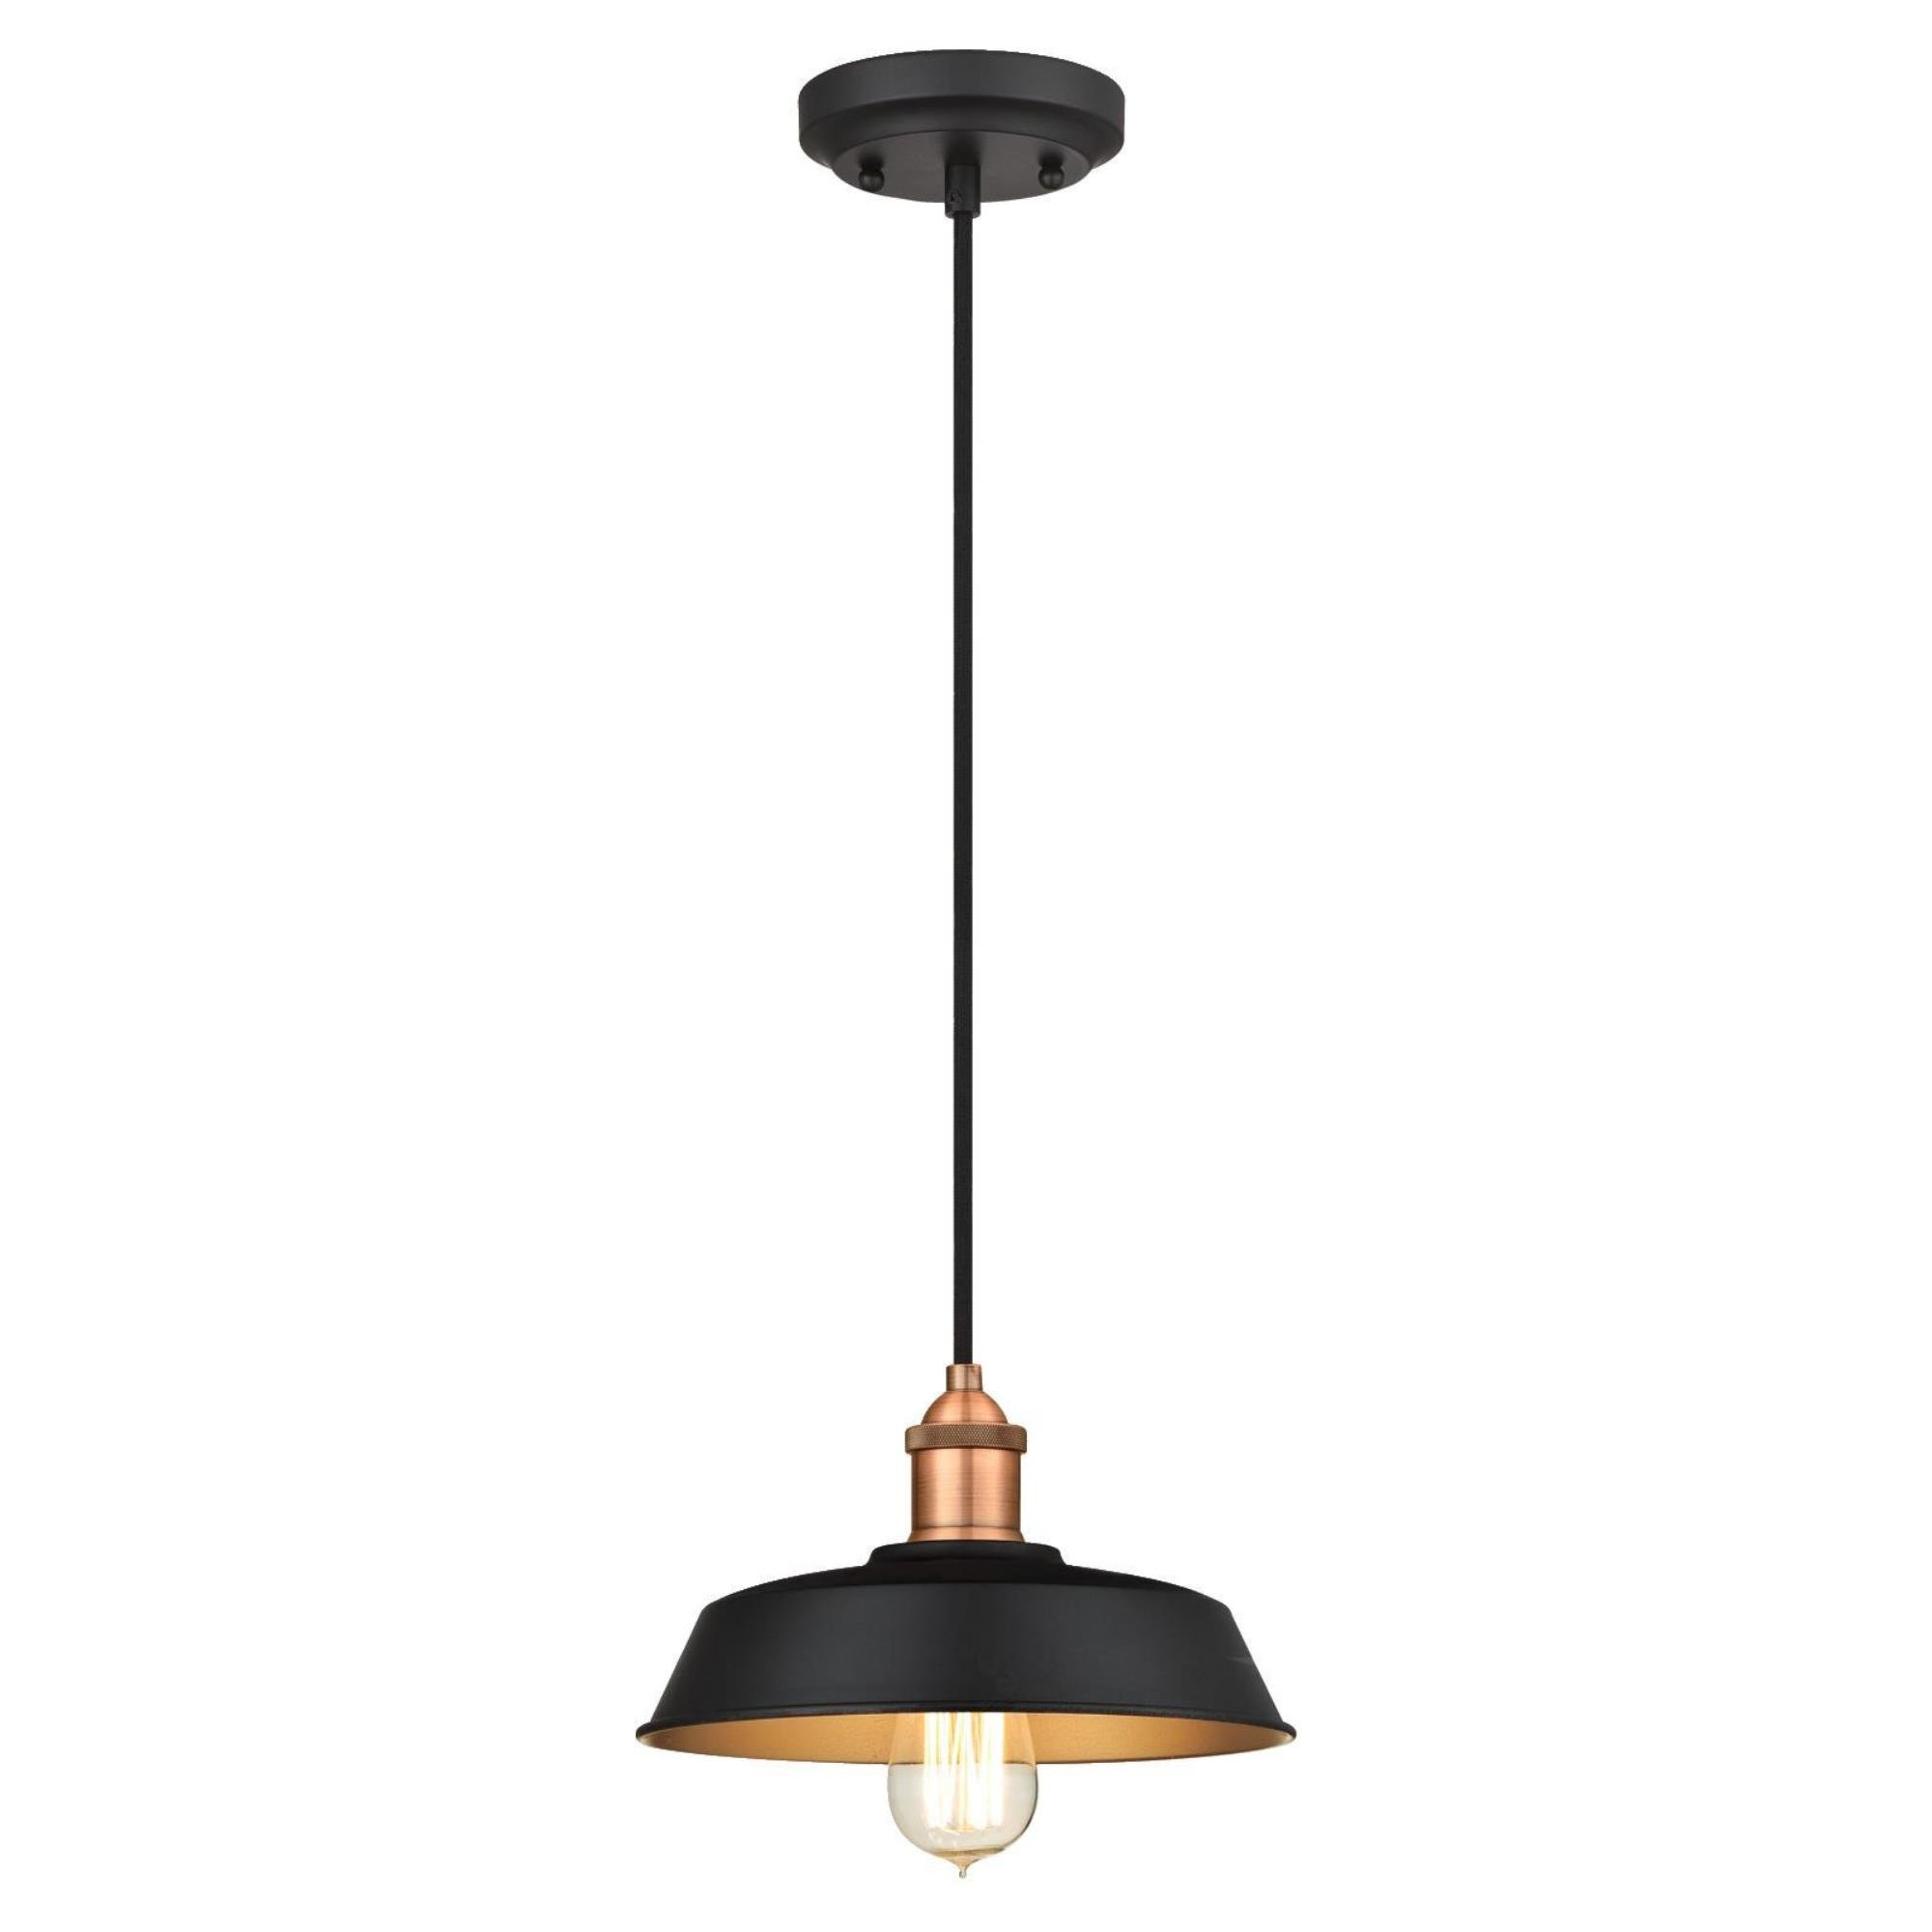 6309000 One-Light Indoor Pendant, Matte Black and Washed Copper Finish with Metallic Bronze Interior